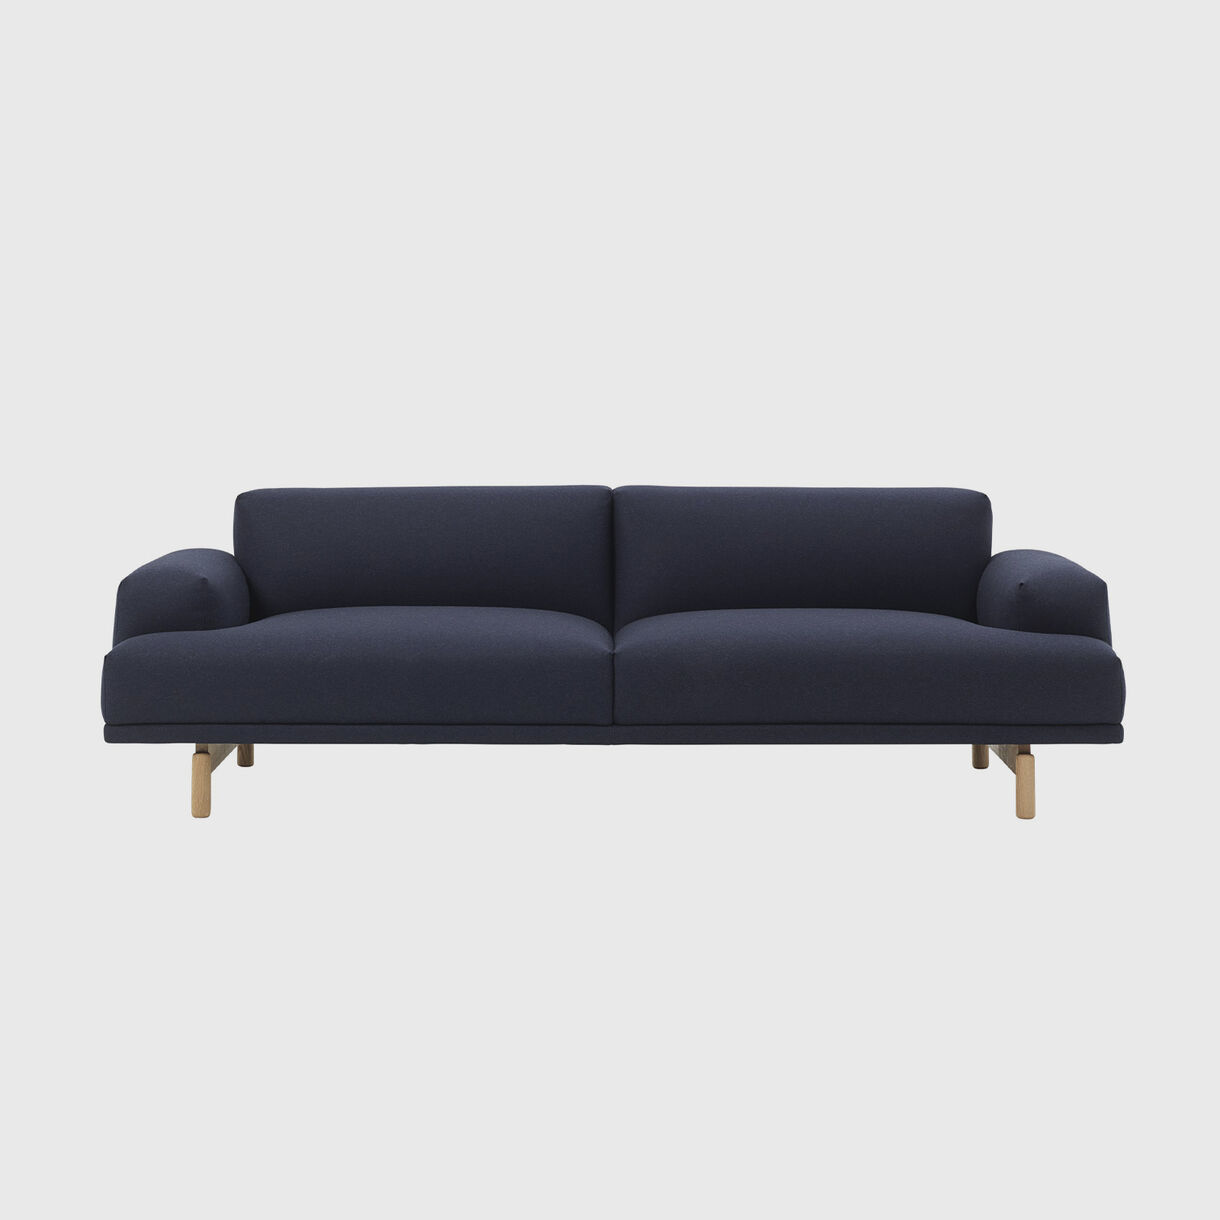 Compose Sofa, 3 Seater, Wooly 1007